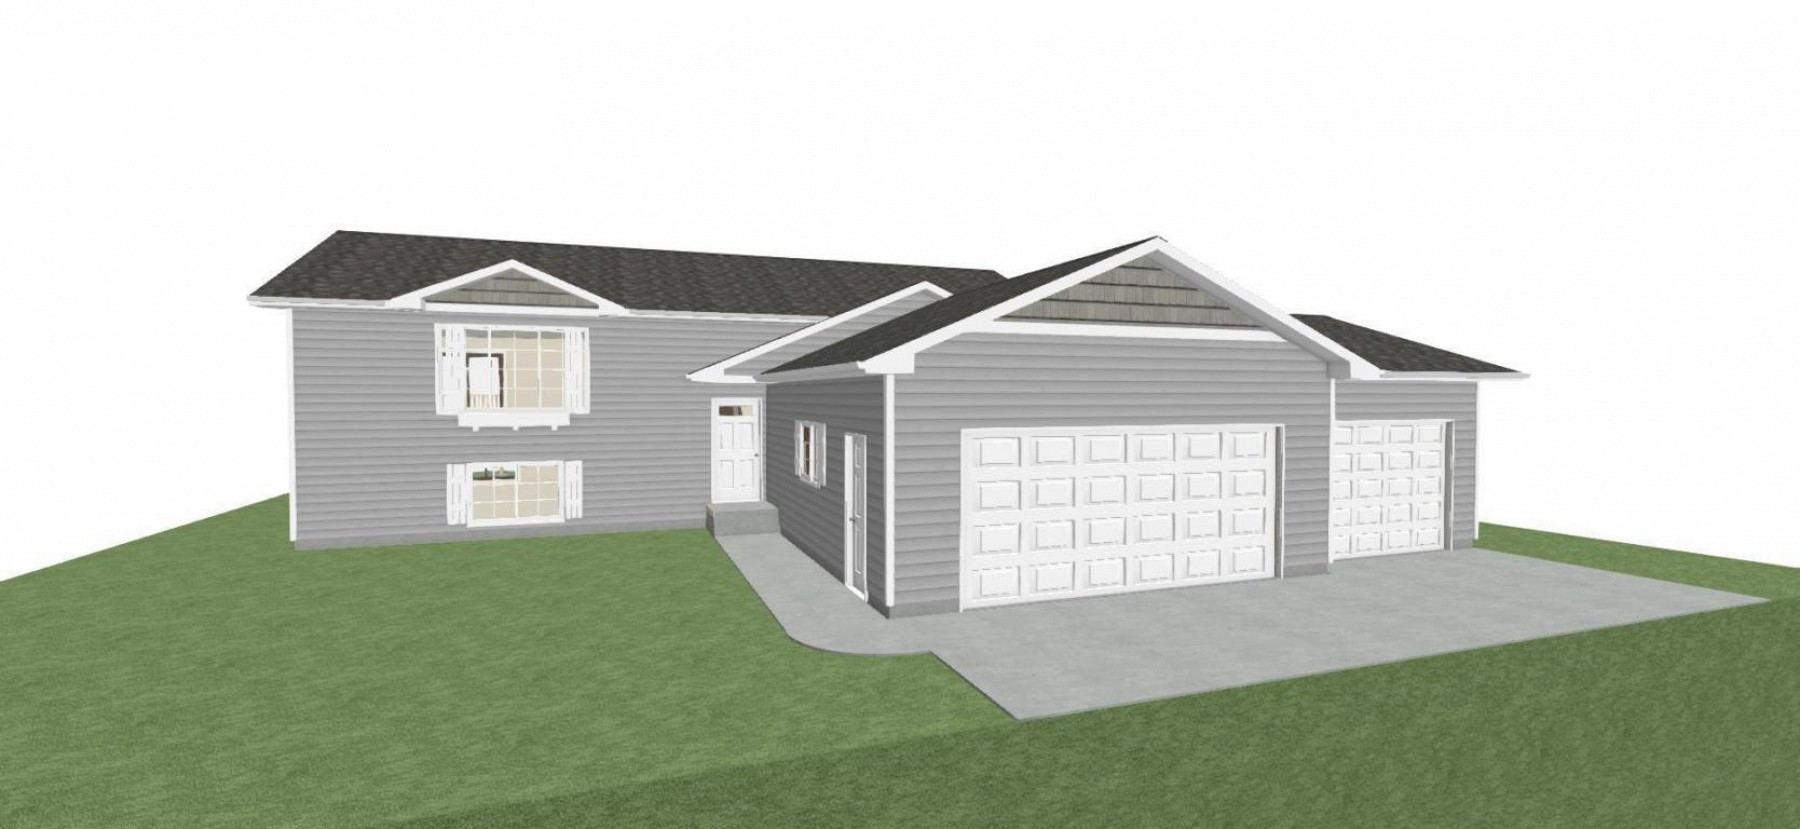 510 5th Street, Volga, SD 57071